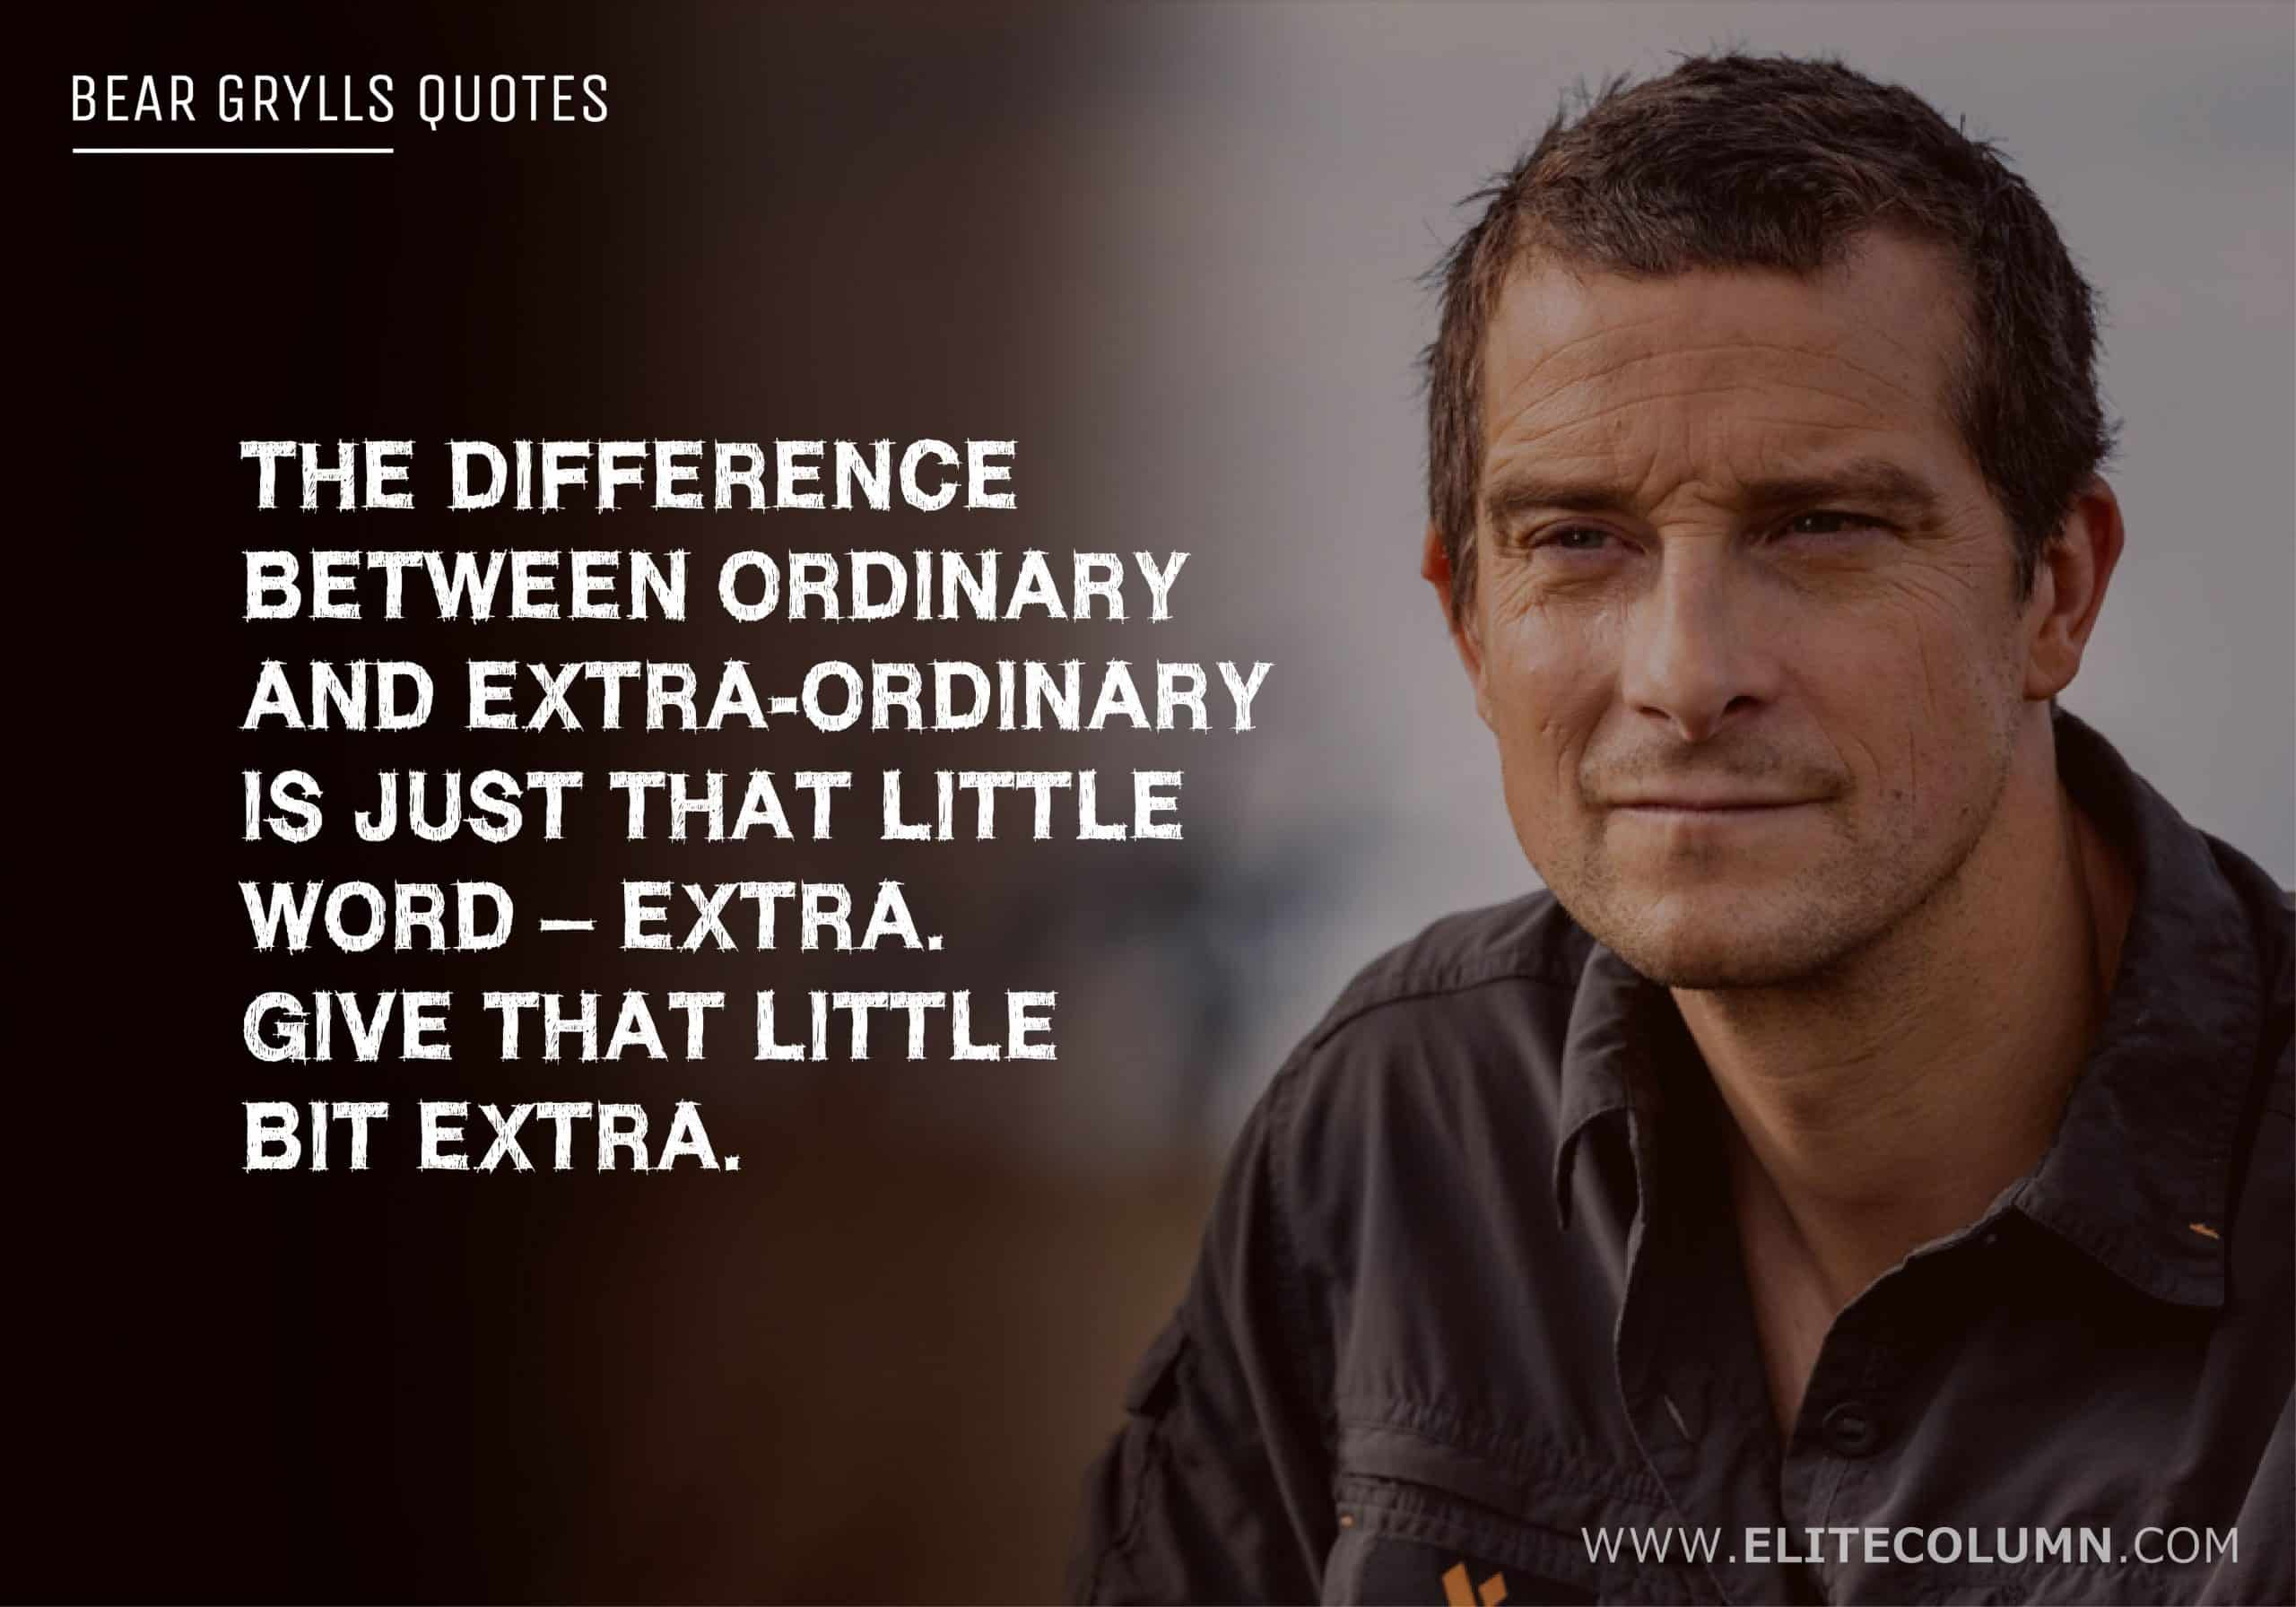 Bear Grylls Quotes (7)